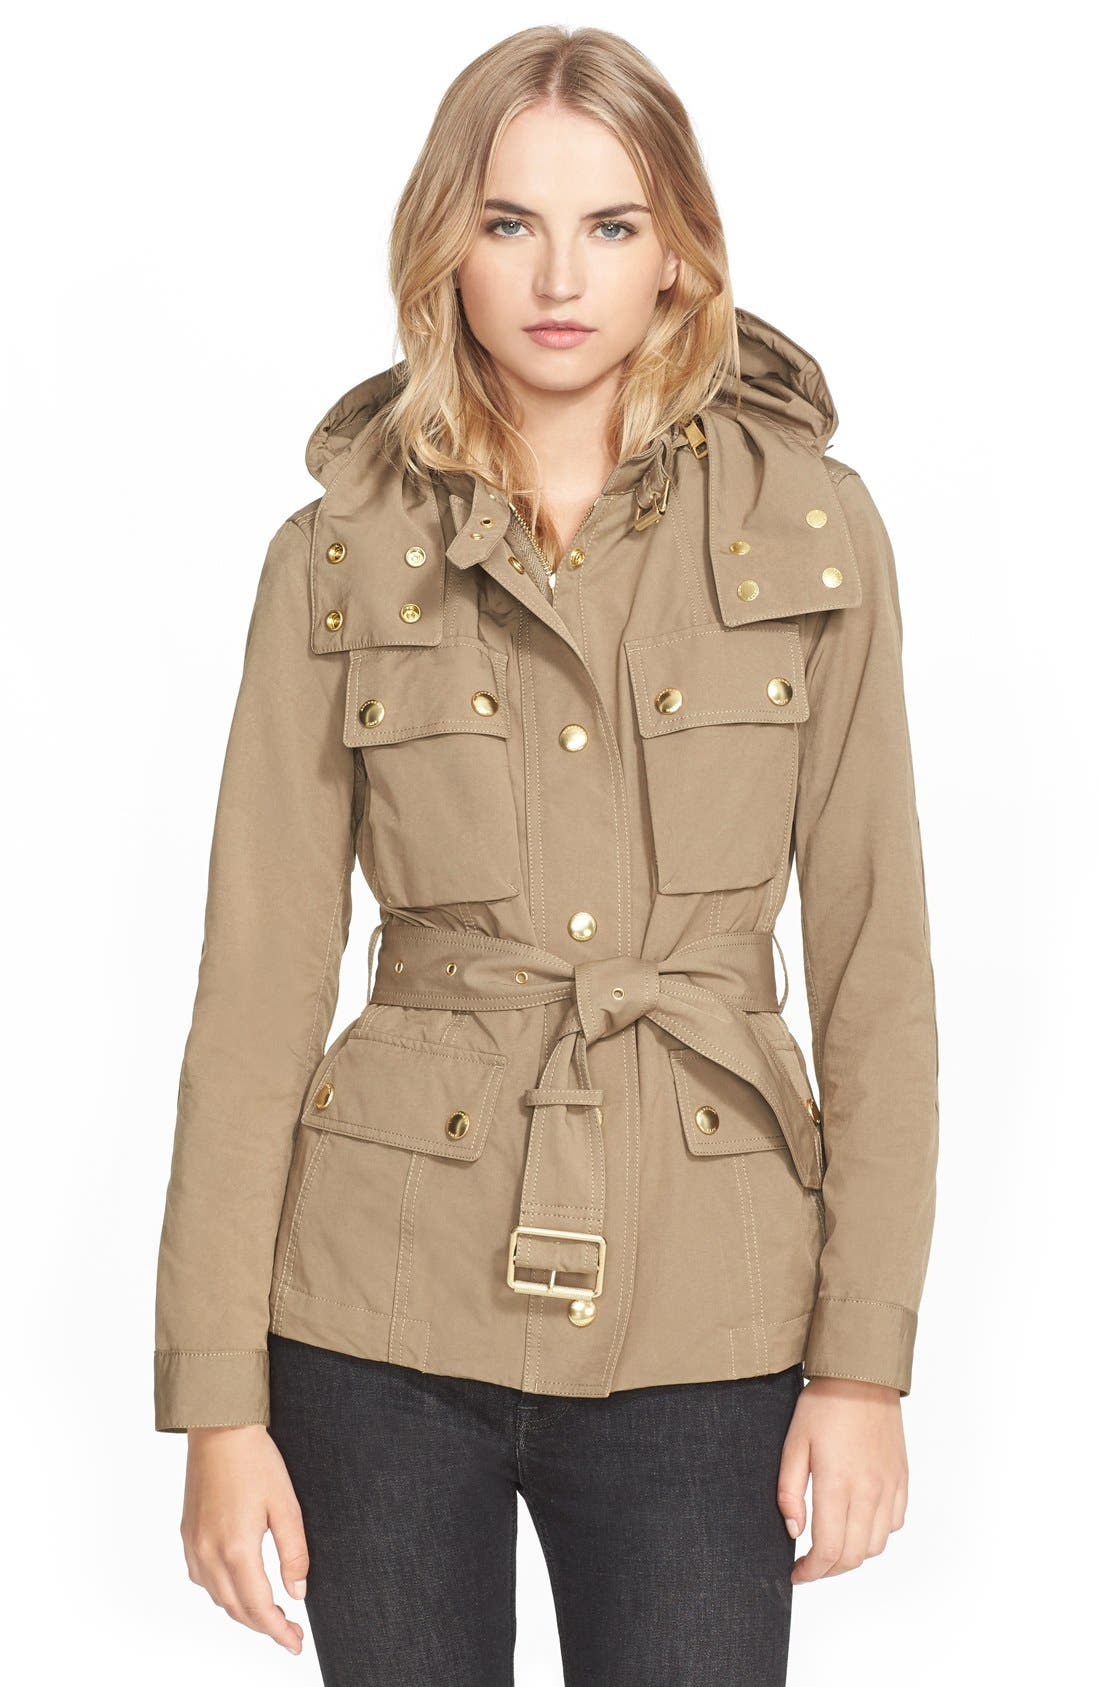 Alternate Image 1 Selected - Burberry Brit 'Fenbridge' Belted Jacket